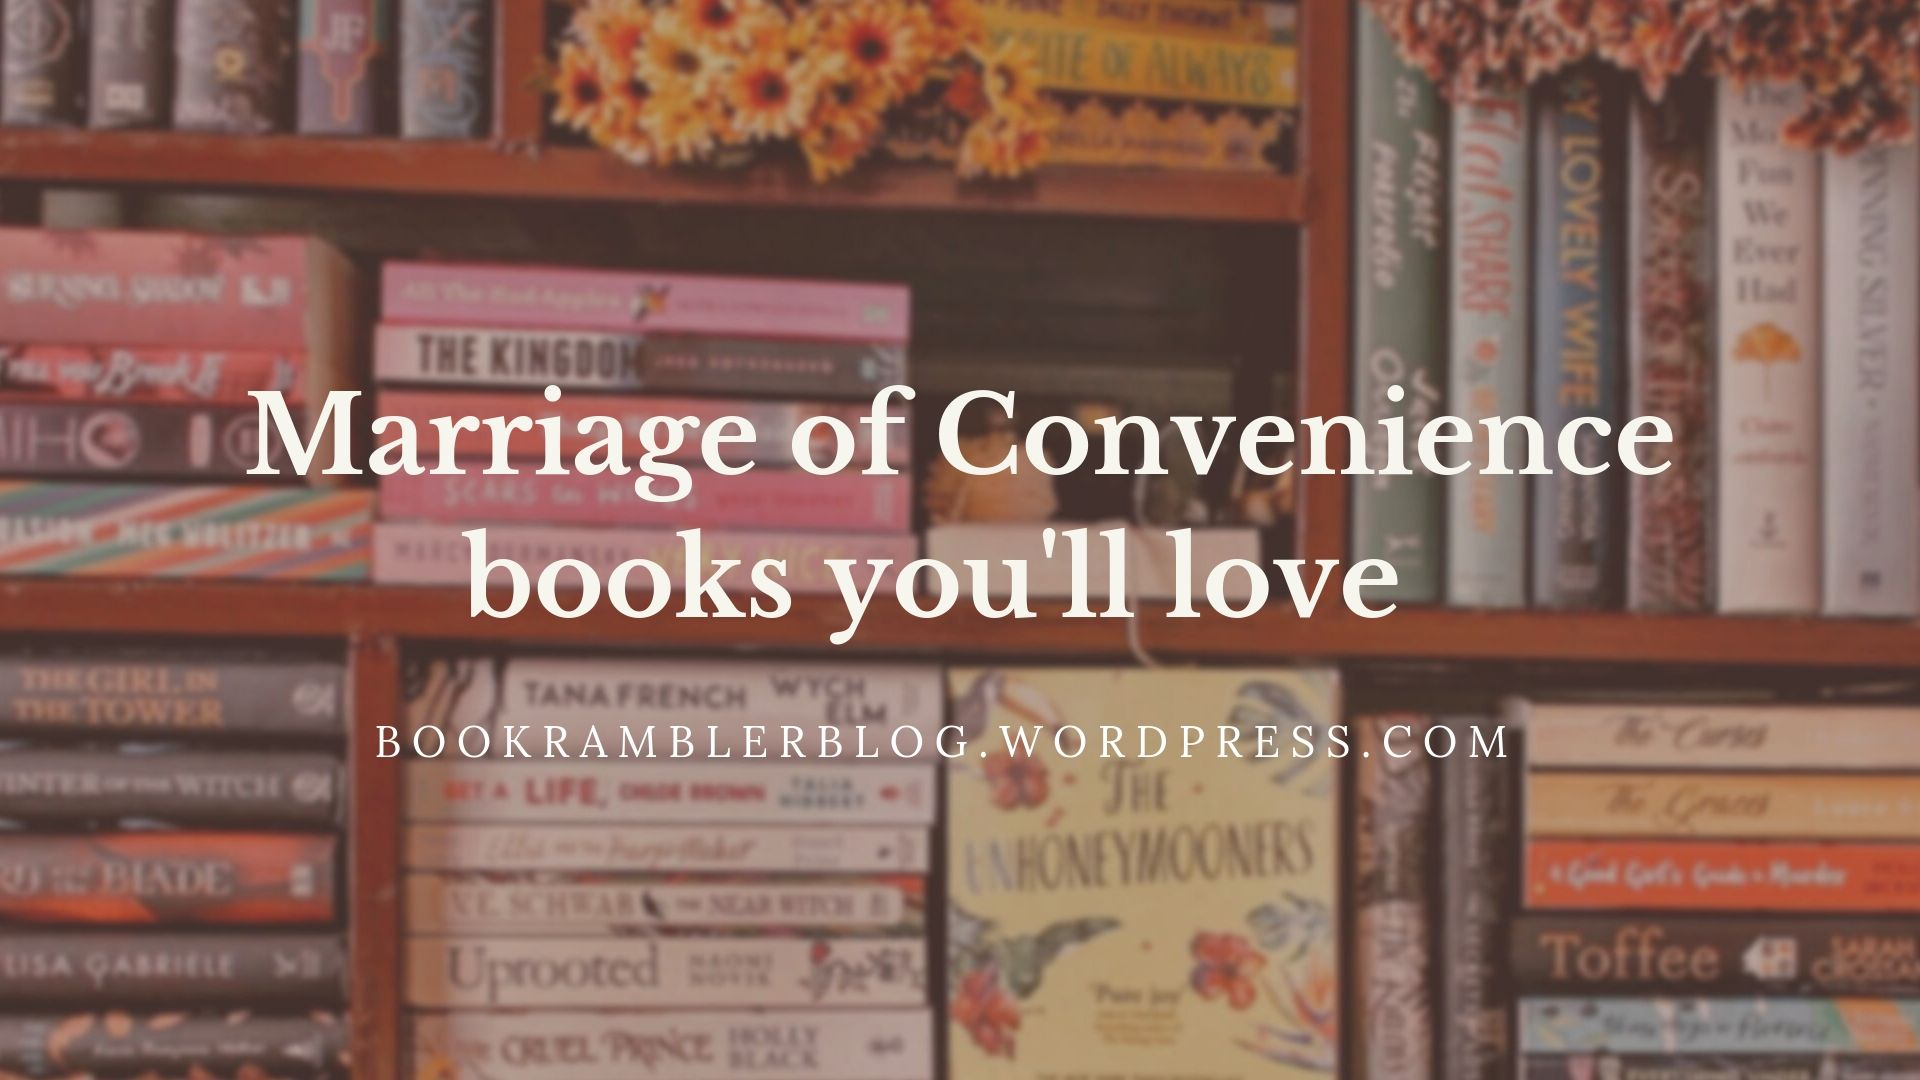 Five Marriage of Convenience books you'll love